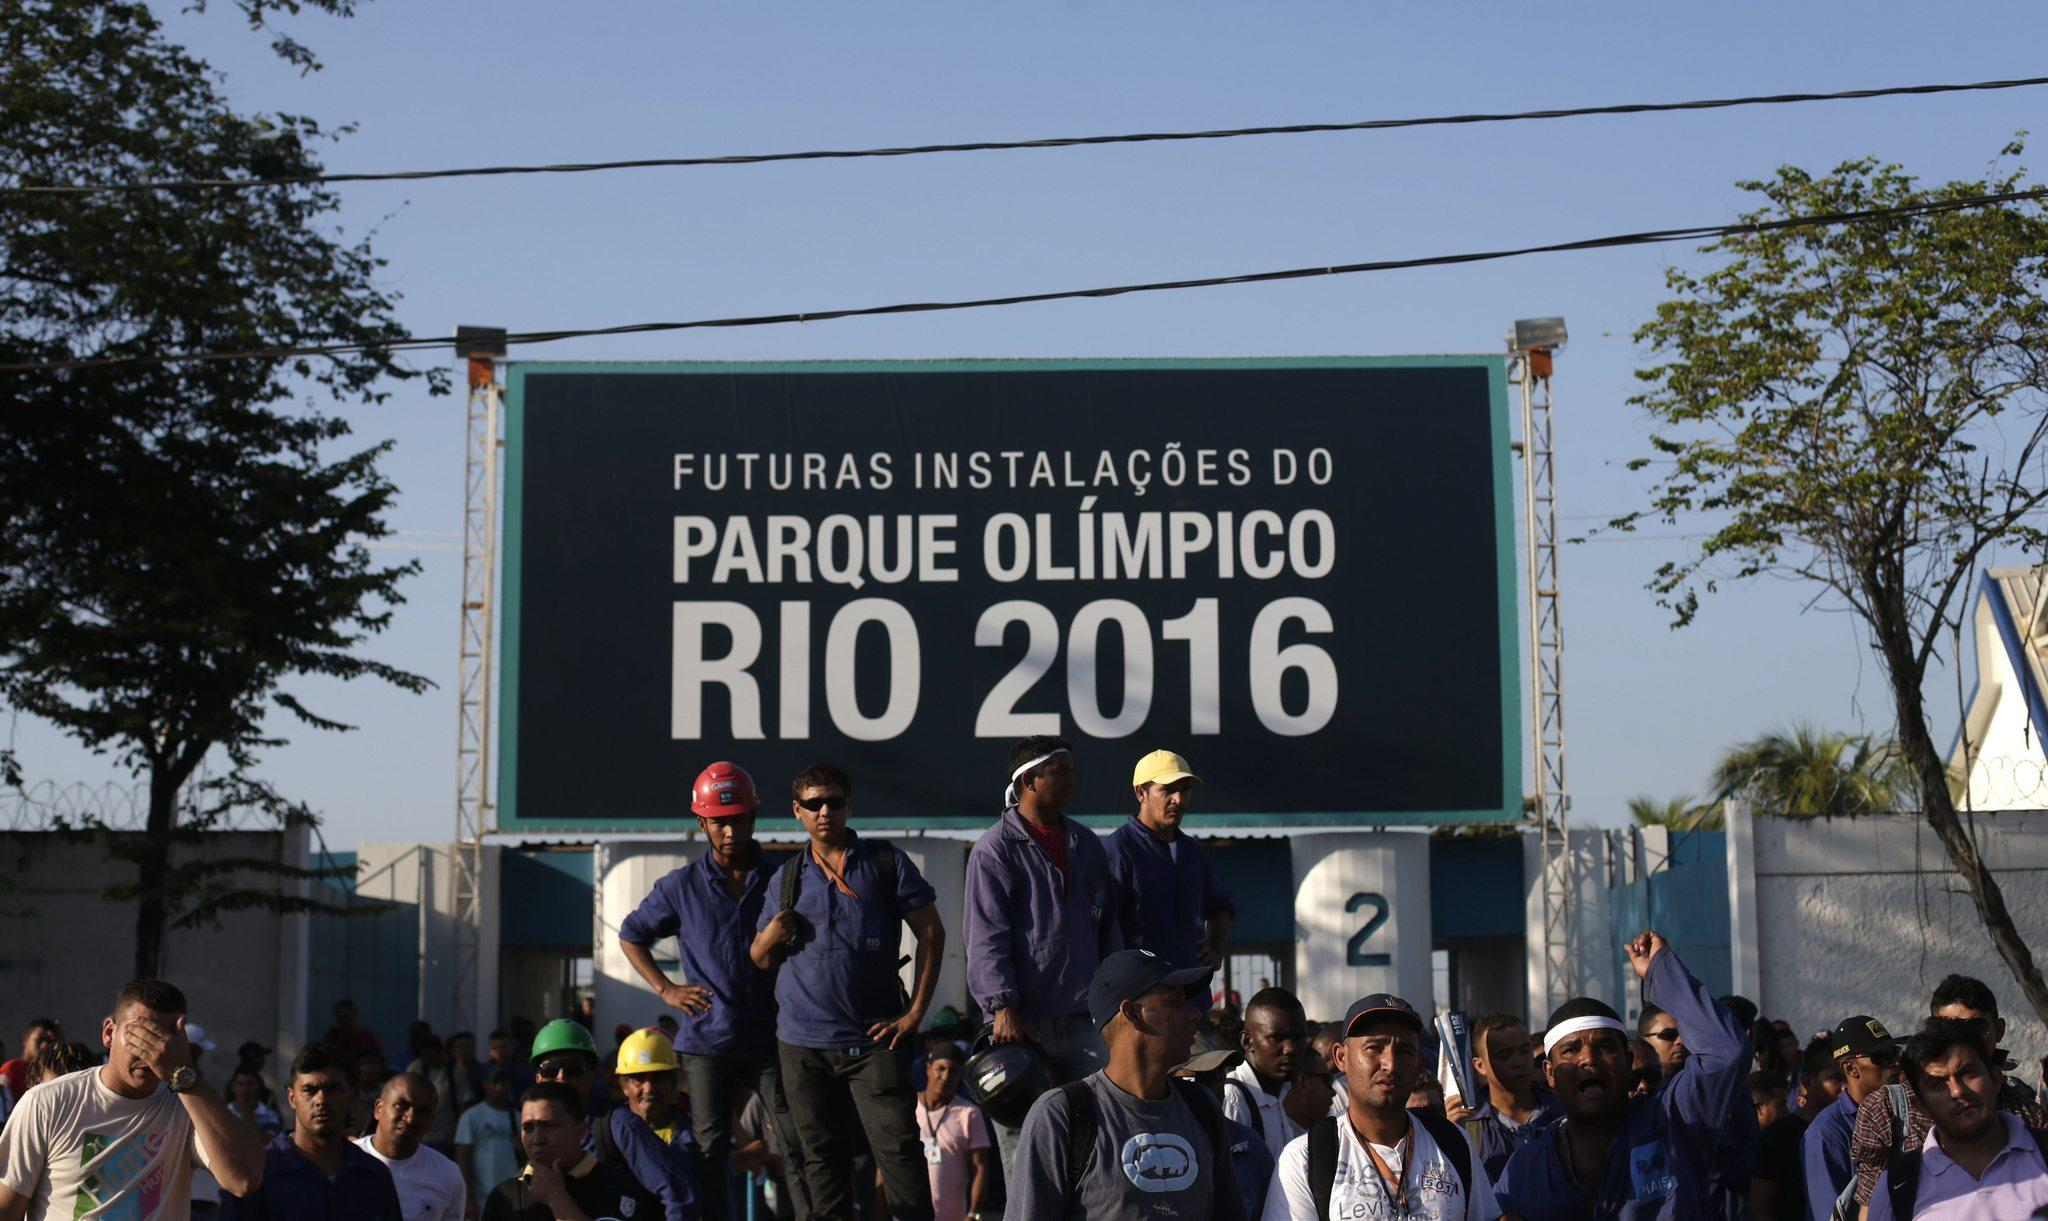 Construction workers on strike for more pay and better union representation stand outside the Rio 2016 Olympic Park construction site this week.